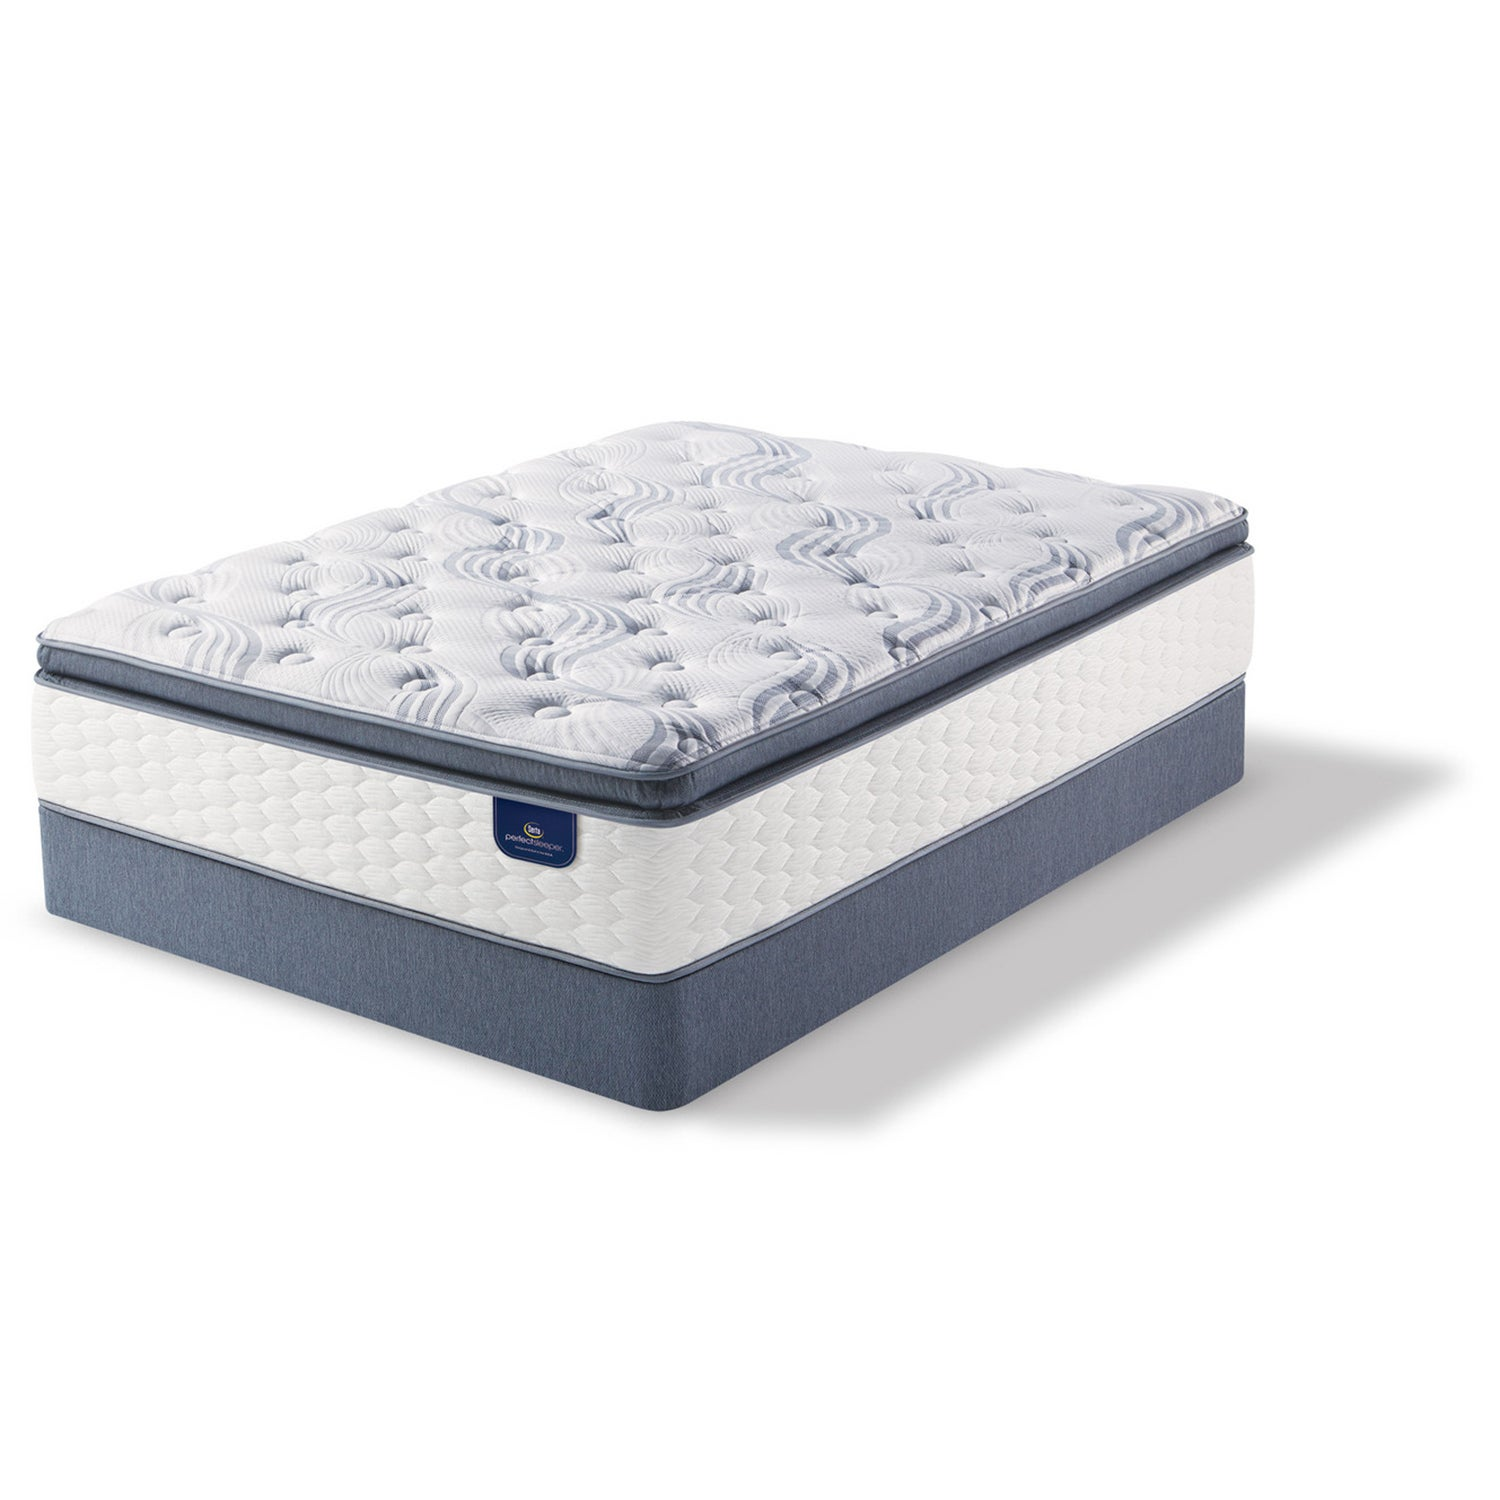 size garden mattress sleeper wayburn shipping home pillow inch topper product top today perfect free serta pillowtop overstock super queen